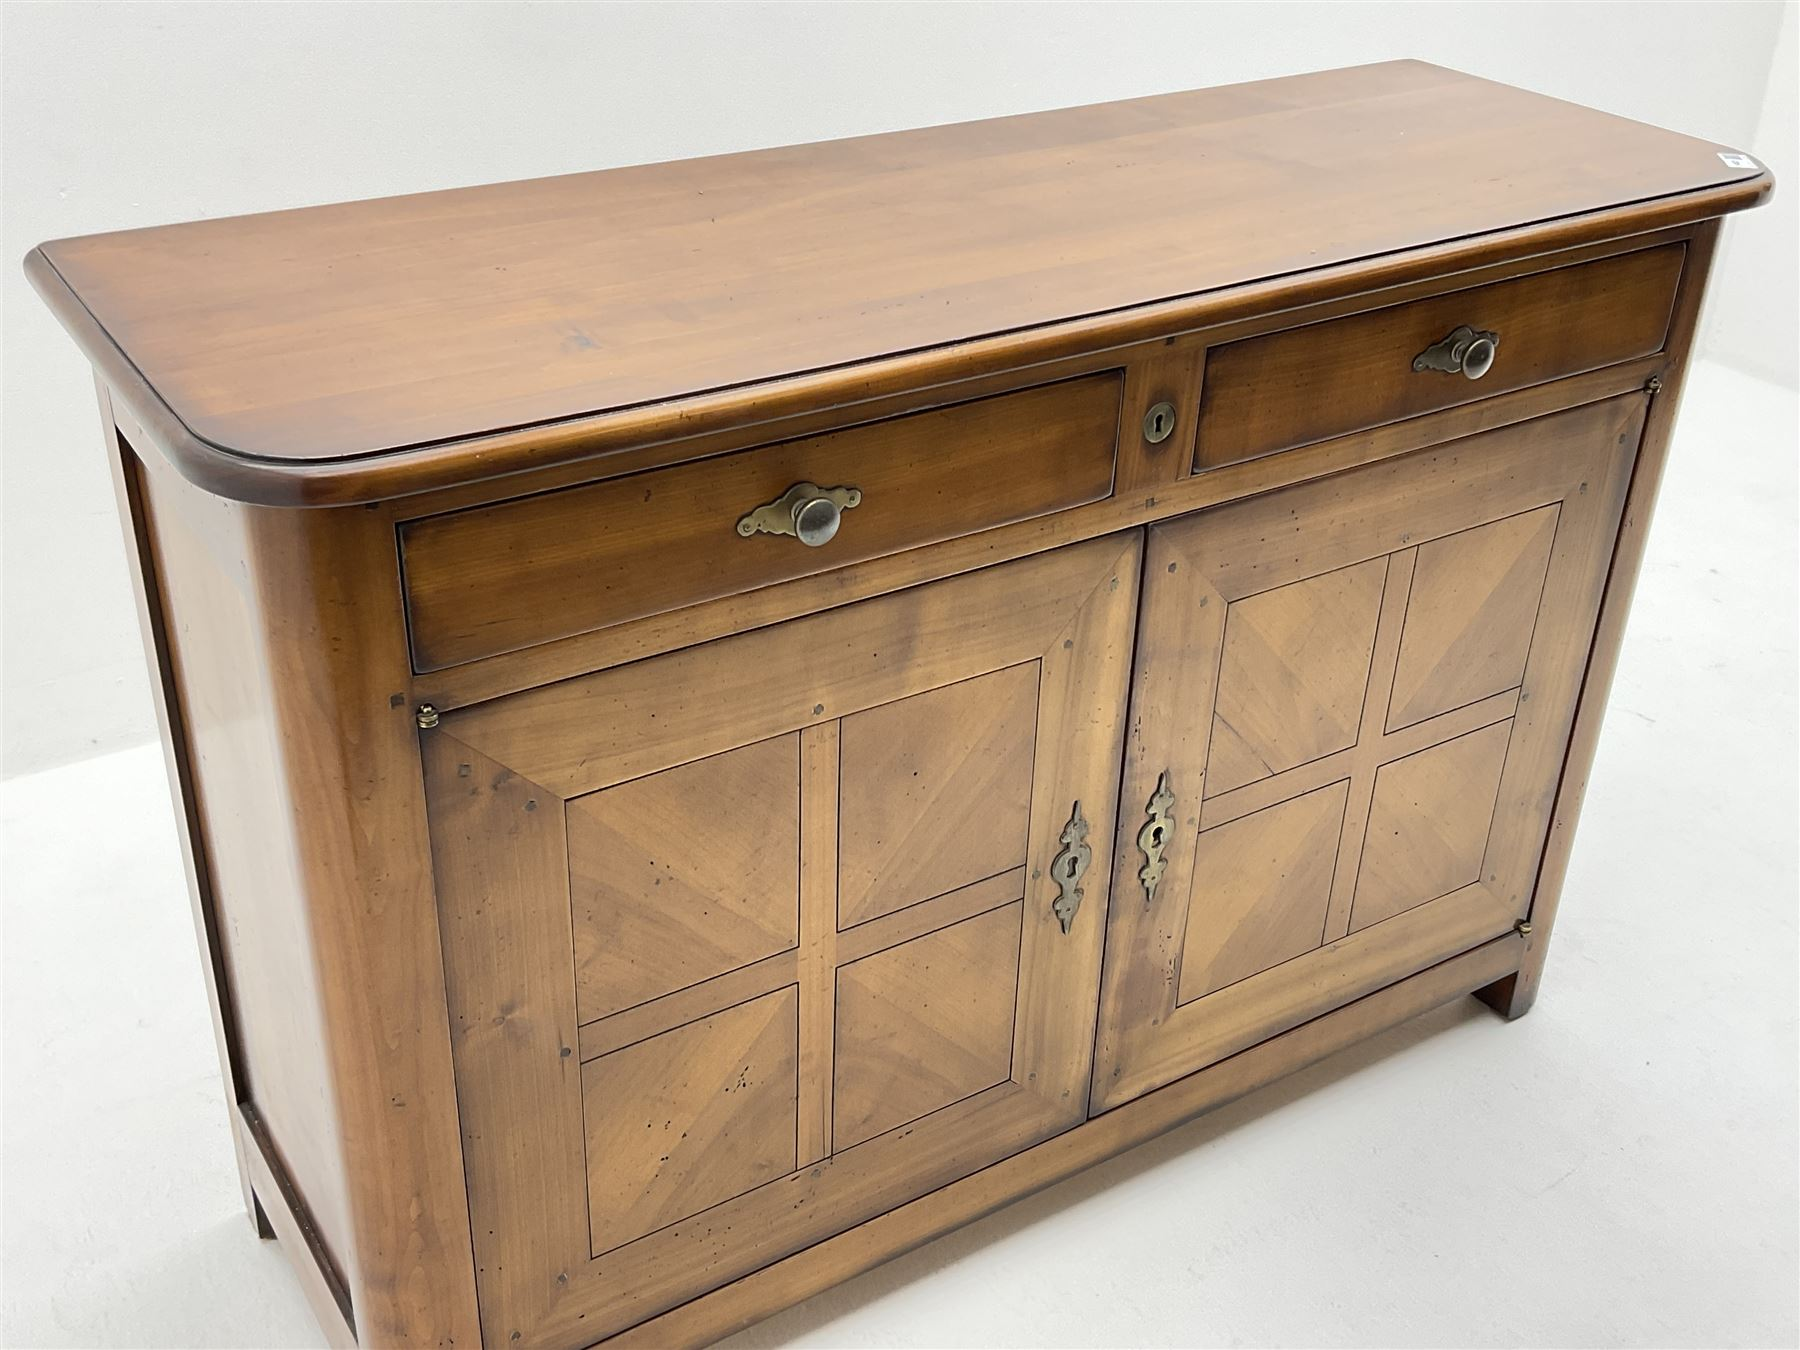 French cherry wood sideboard - Image 2 of 3